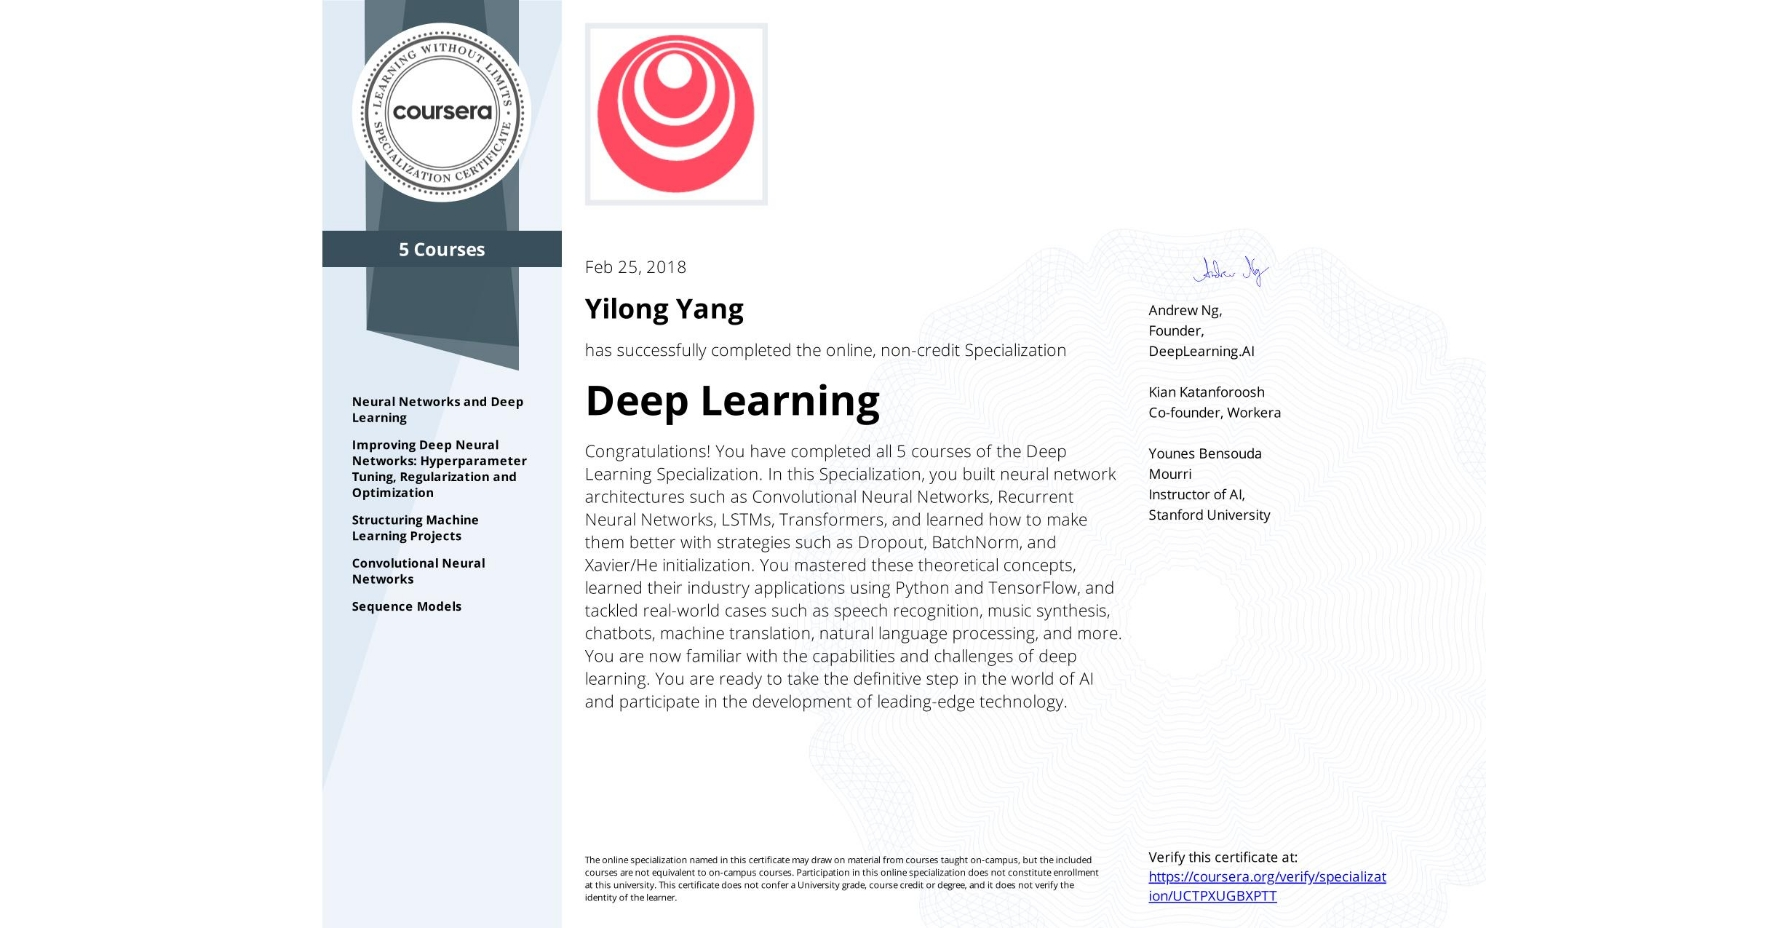 View certificate for Yilong Yang, Deep Learning, offered through Coursera. The Deep Learning Specialization is designed to prepare learners to participate in the development of cutting-edge AI technology, and to understand the capability, the challenges, and the consequences of the rise of deep learning. Through five interconnected courses, learners develop a profound knowledge of the hottest AI algorithms, mastering deep learning from its foundations (neural networks) to its industry applications (Computer Vision, Natural Language Processing, Speech Recognition, etc.).